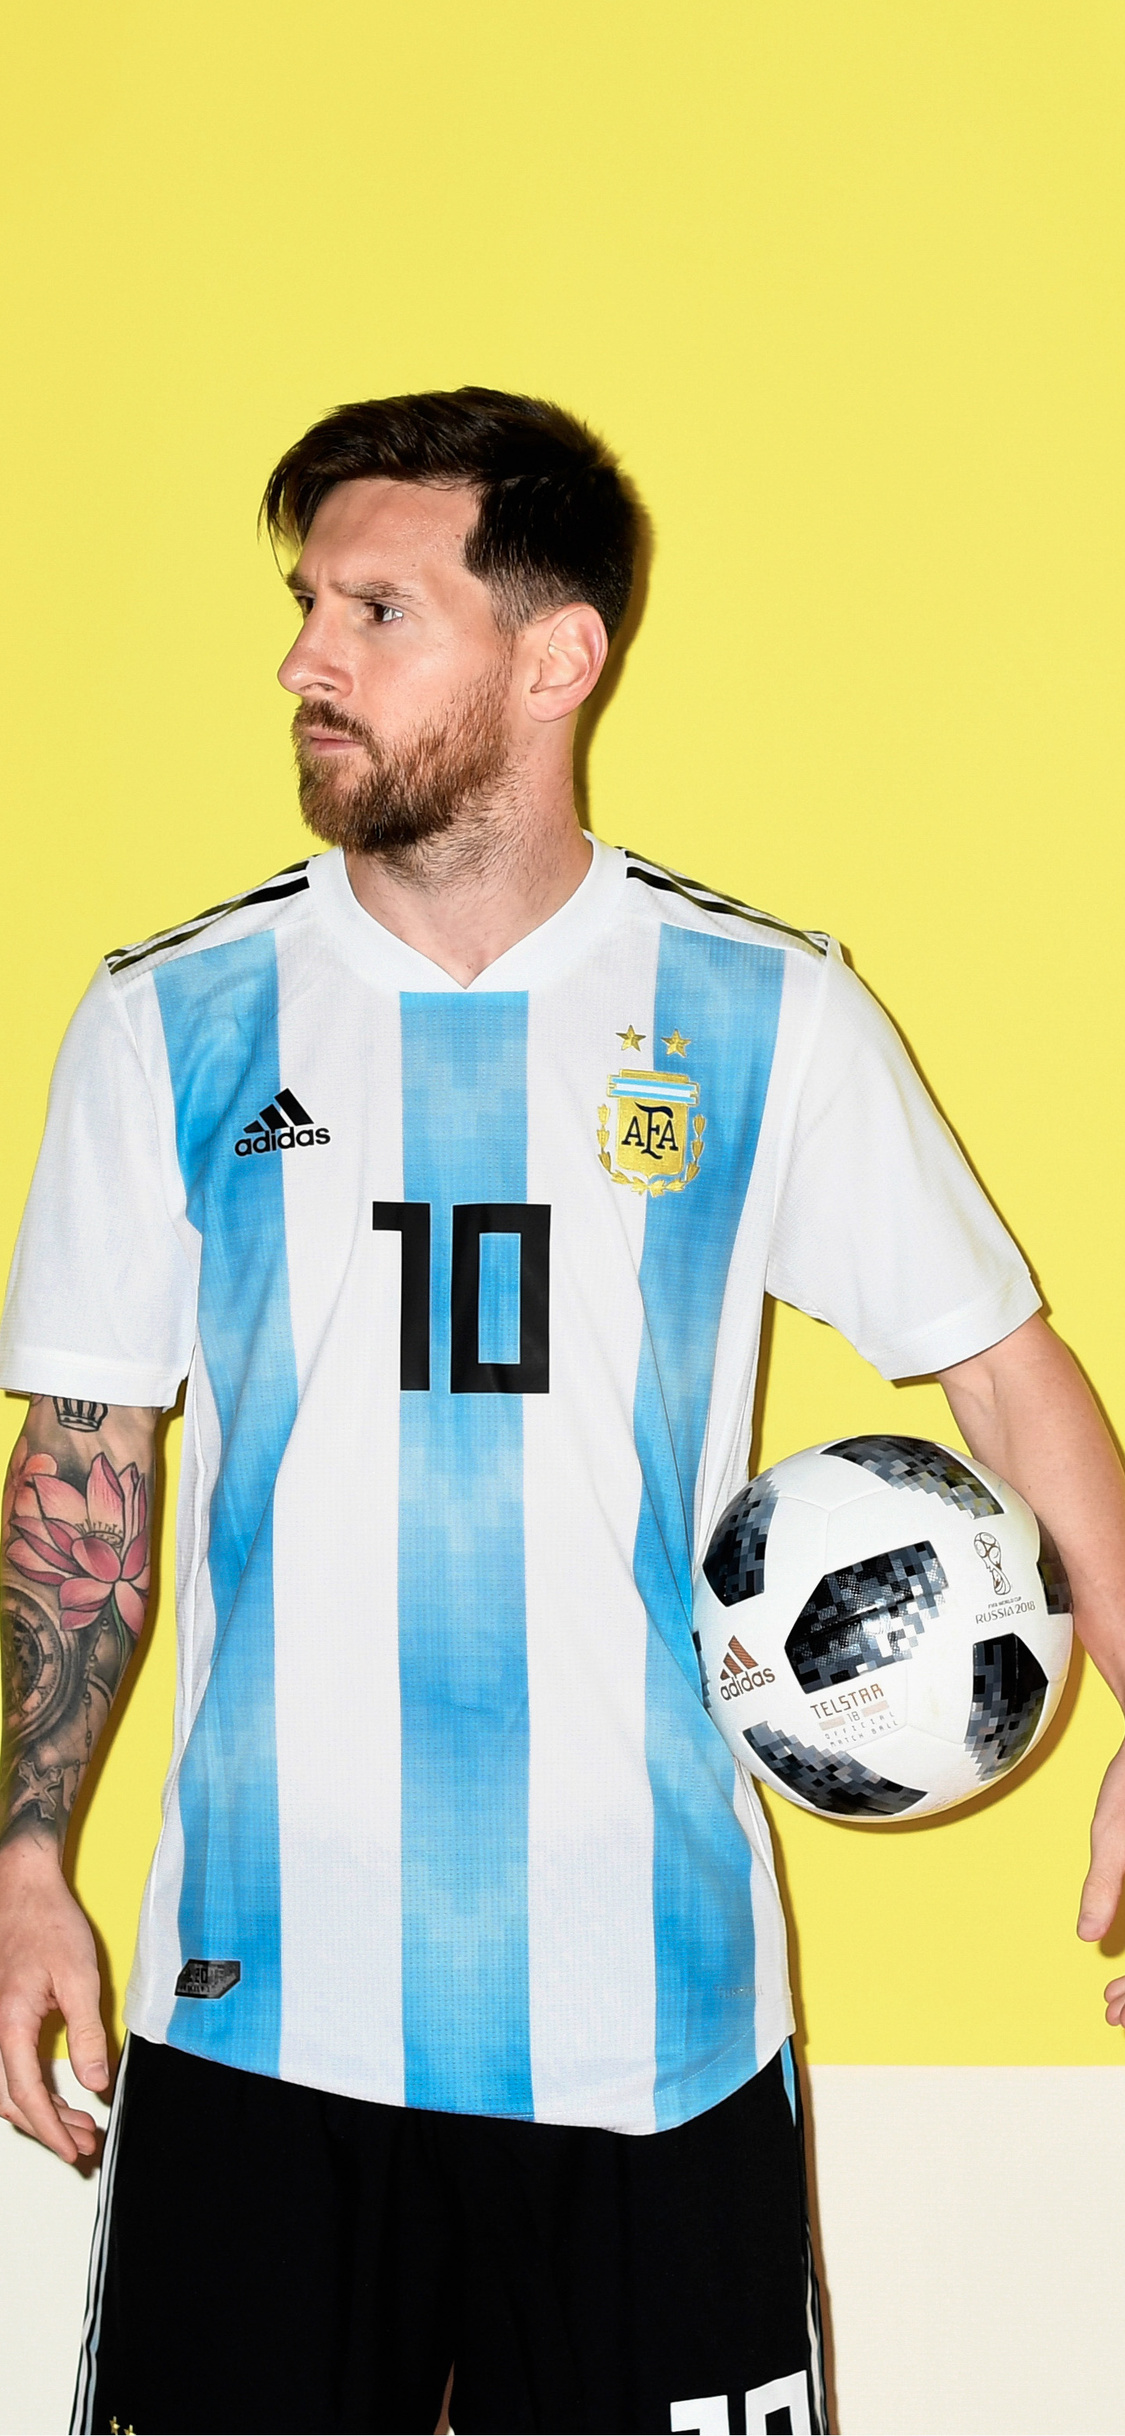 https hdqwalls com wallpaper 1125x2436 lionel messi argentina portrait 2018